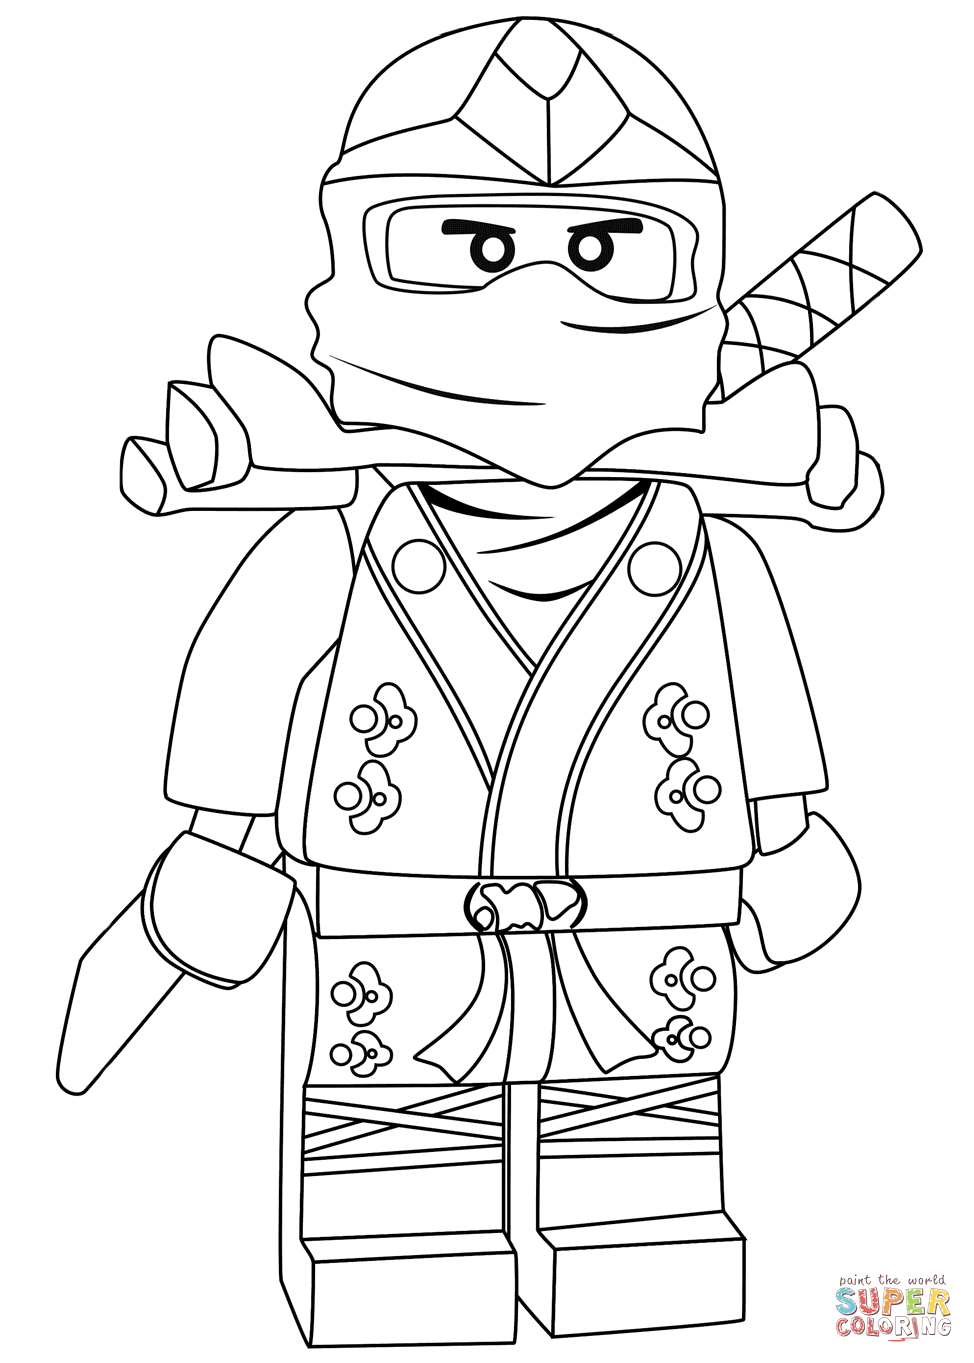 Ninjago Lloyd Drawing at GetDrawings.com | Free for ...